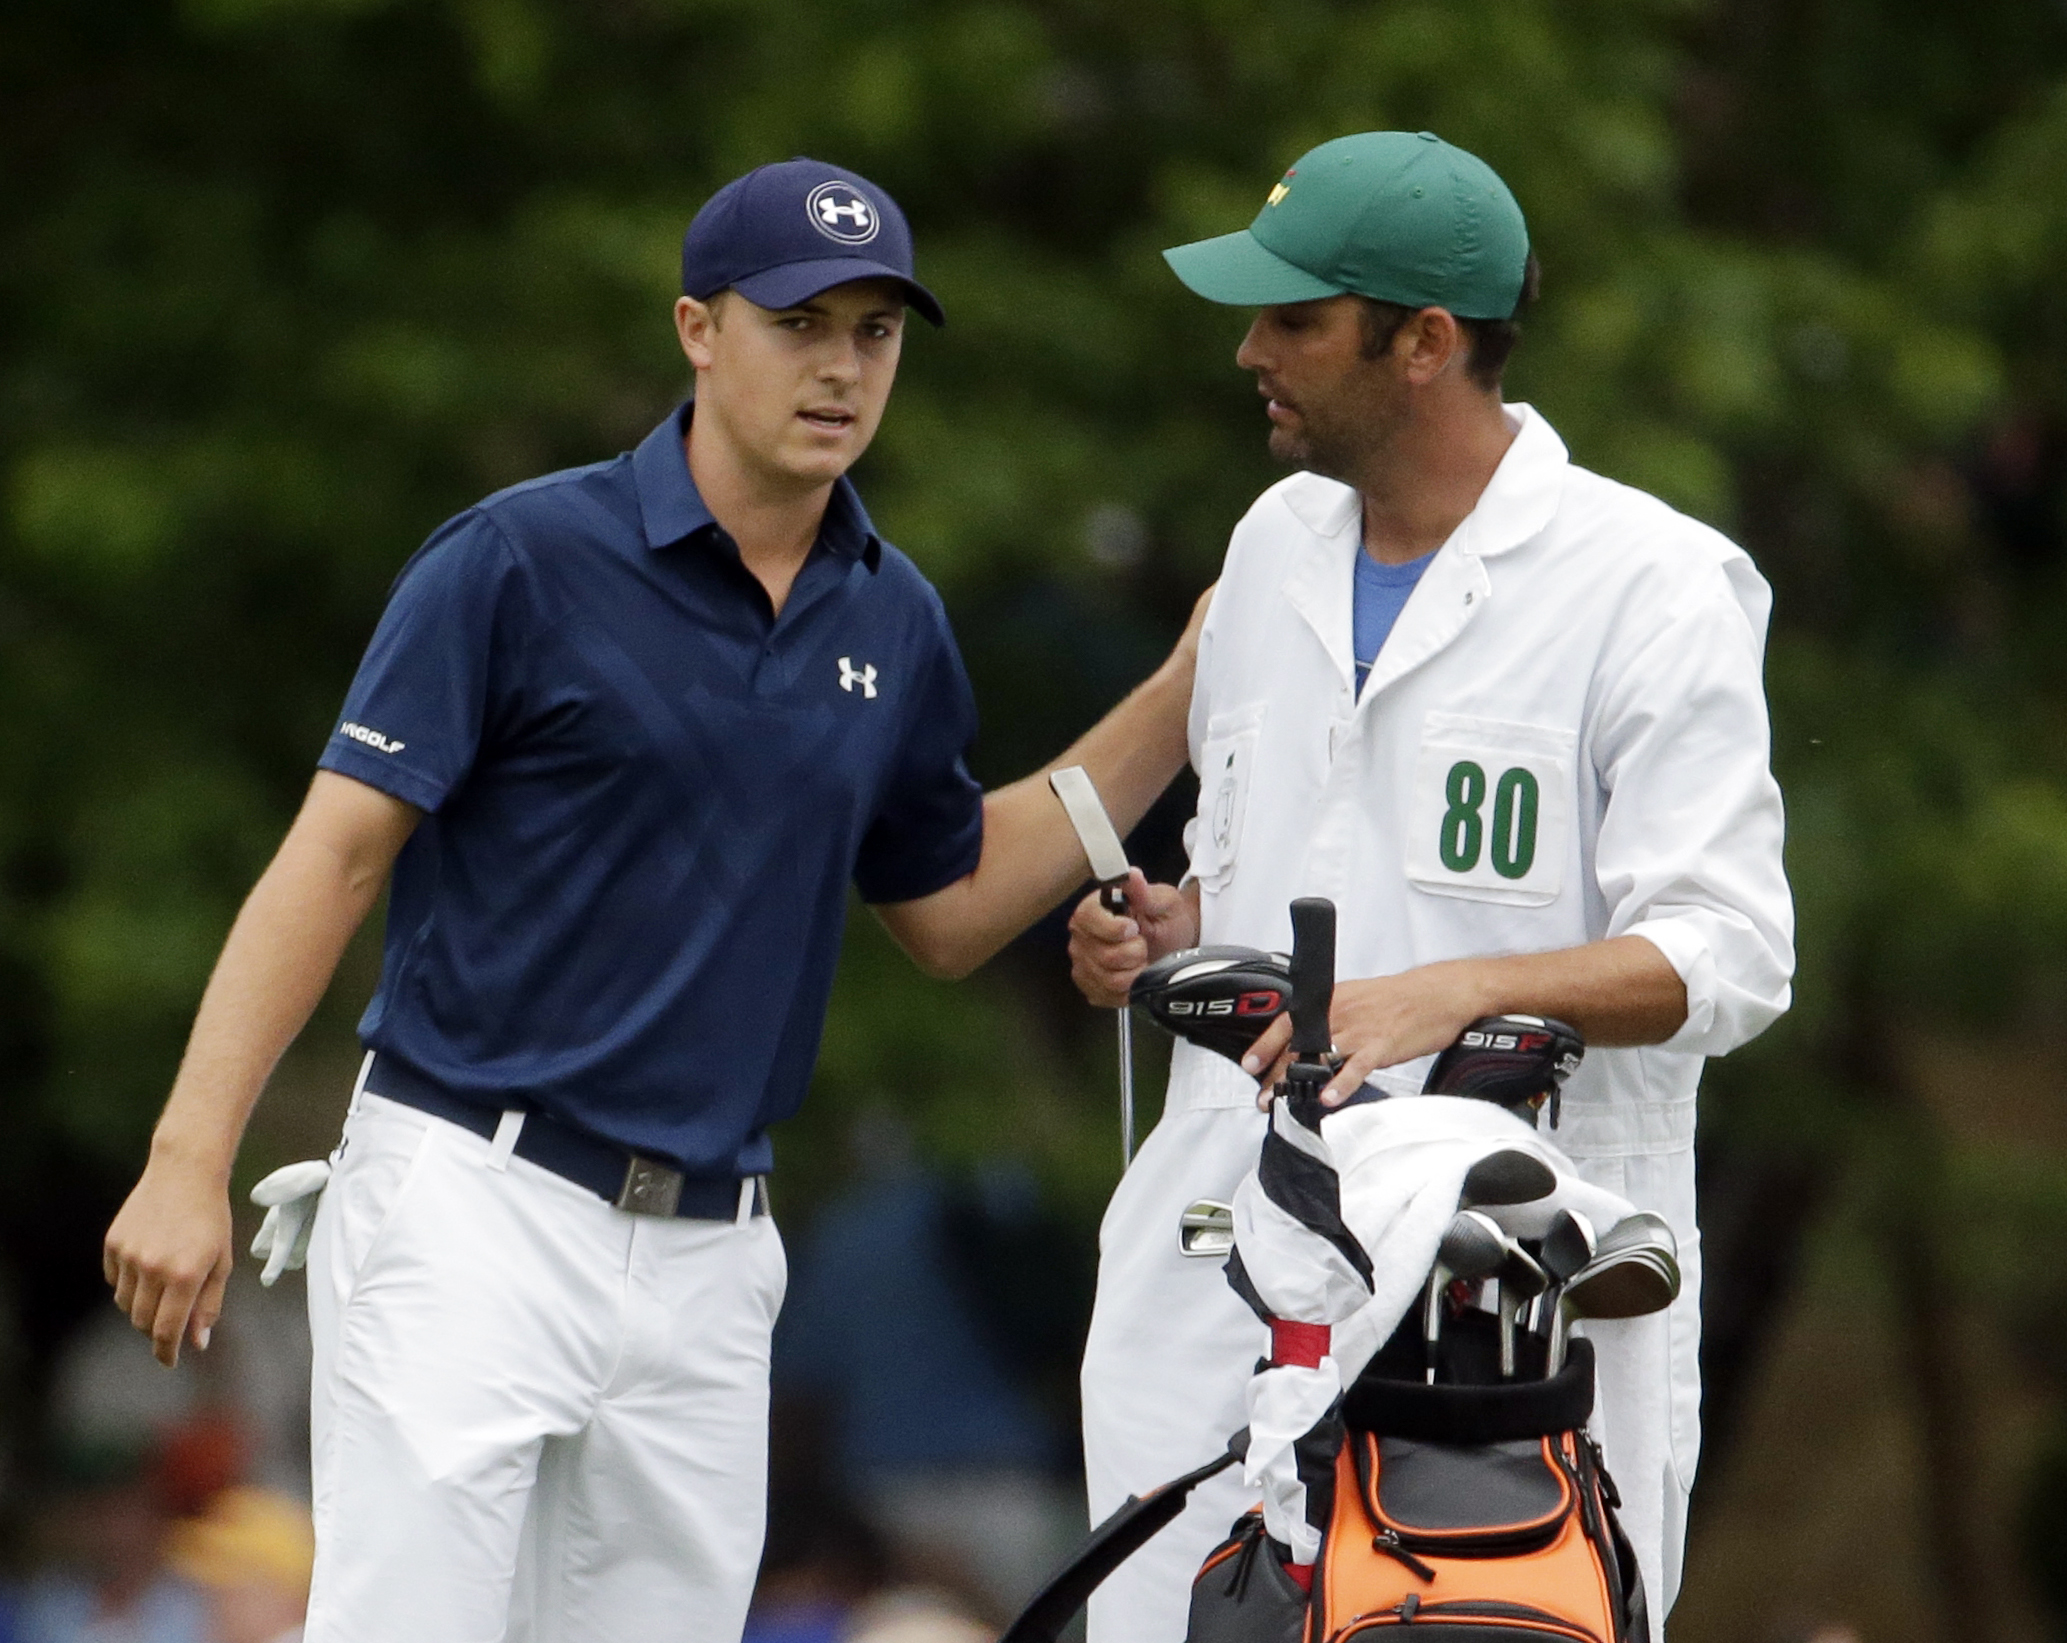 Jordan Spieth speaks with his caddie Michael Greller on the 15th hole during the fourth round of the Masters golf tournament Sunday, April 12, 2015, in Augusta, Ga. (AP Photo/Charlie Riedel)